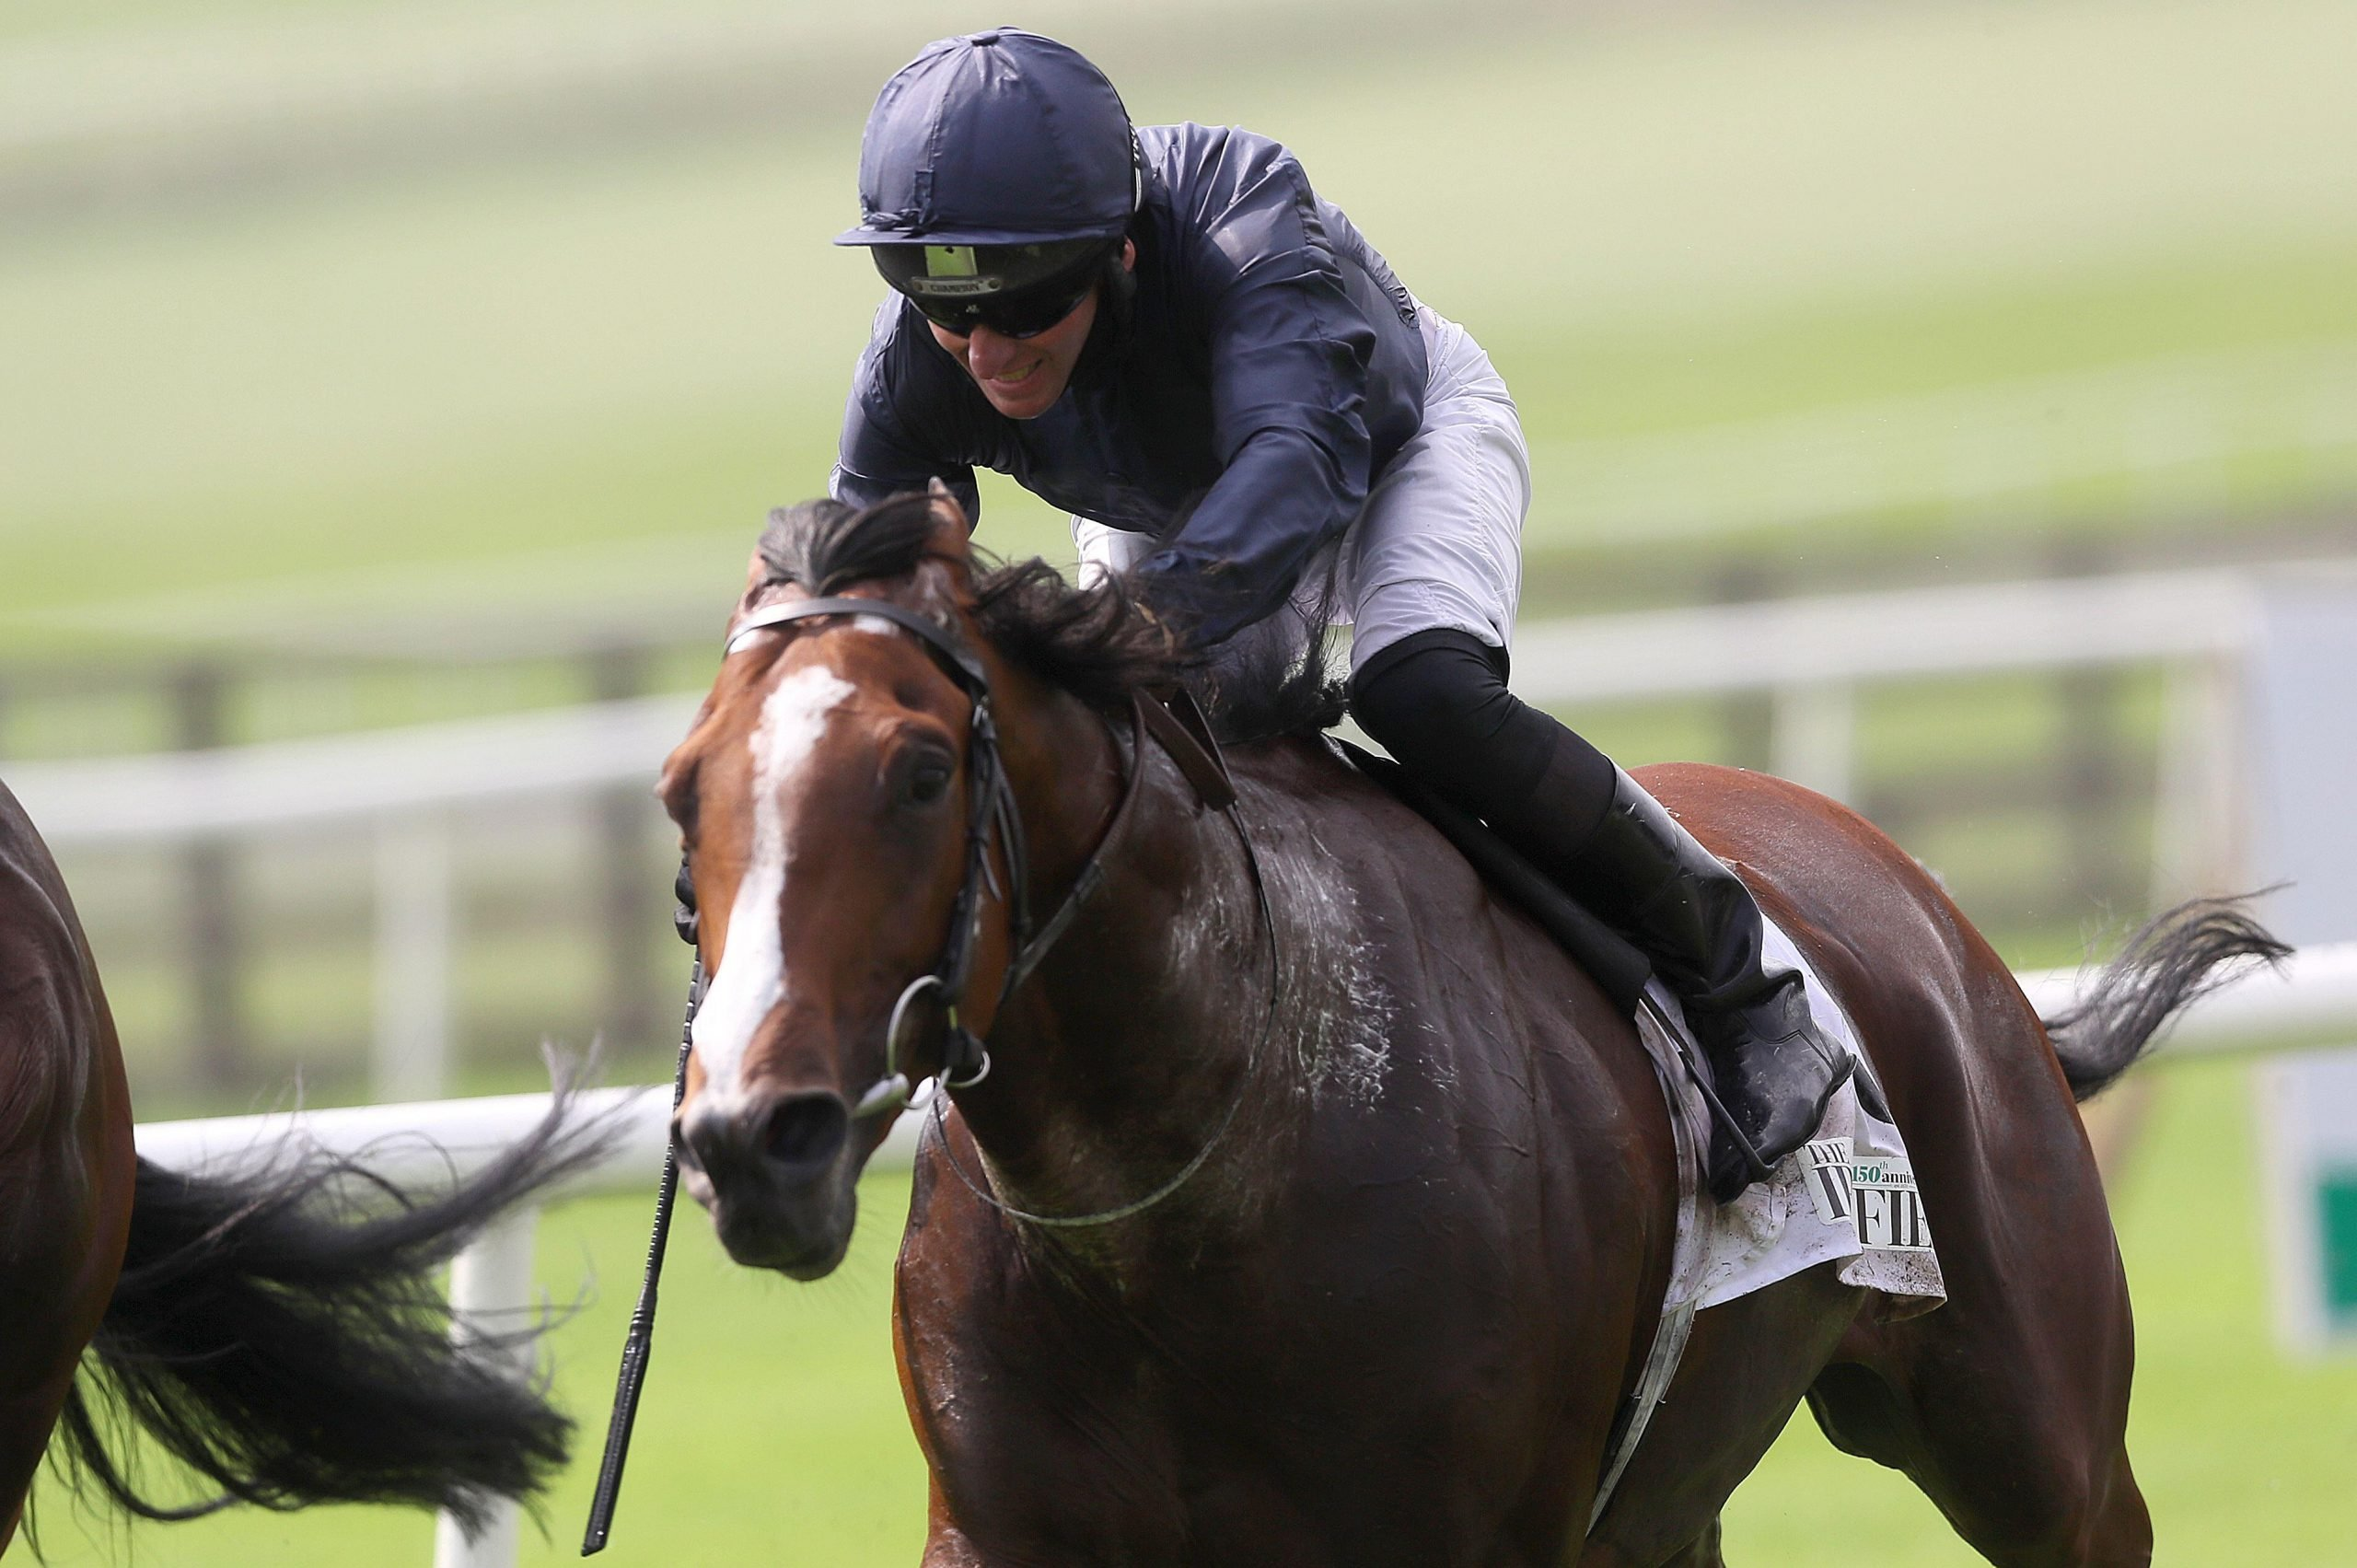 Armory ridden by Seamie Heffernan gets up to win The Irish Field Celebrating 150 Years Royal Whip Stakes at Curragh Racecourse, Co. Kildare, Ireland.